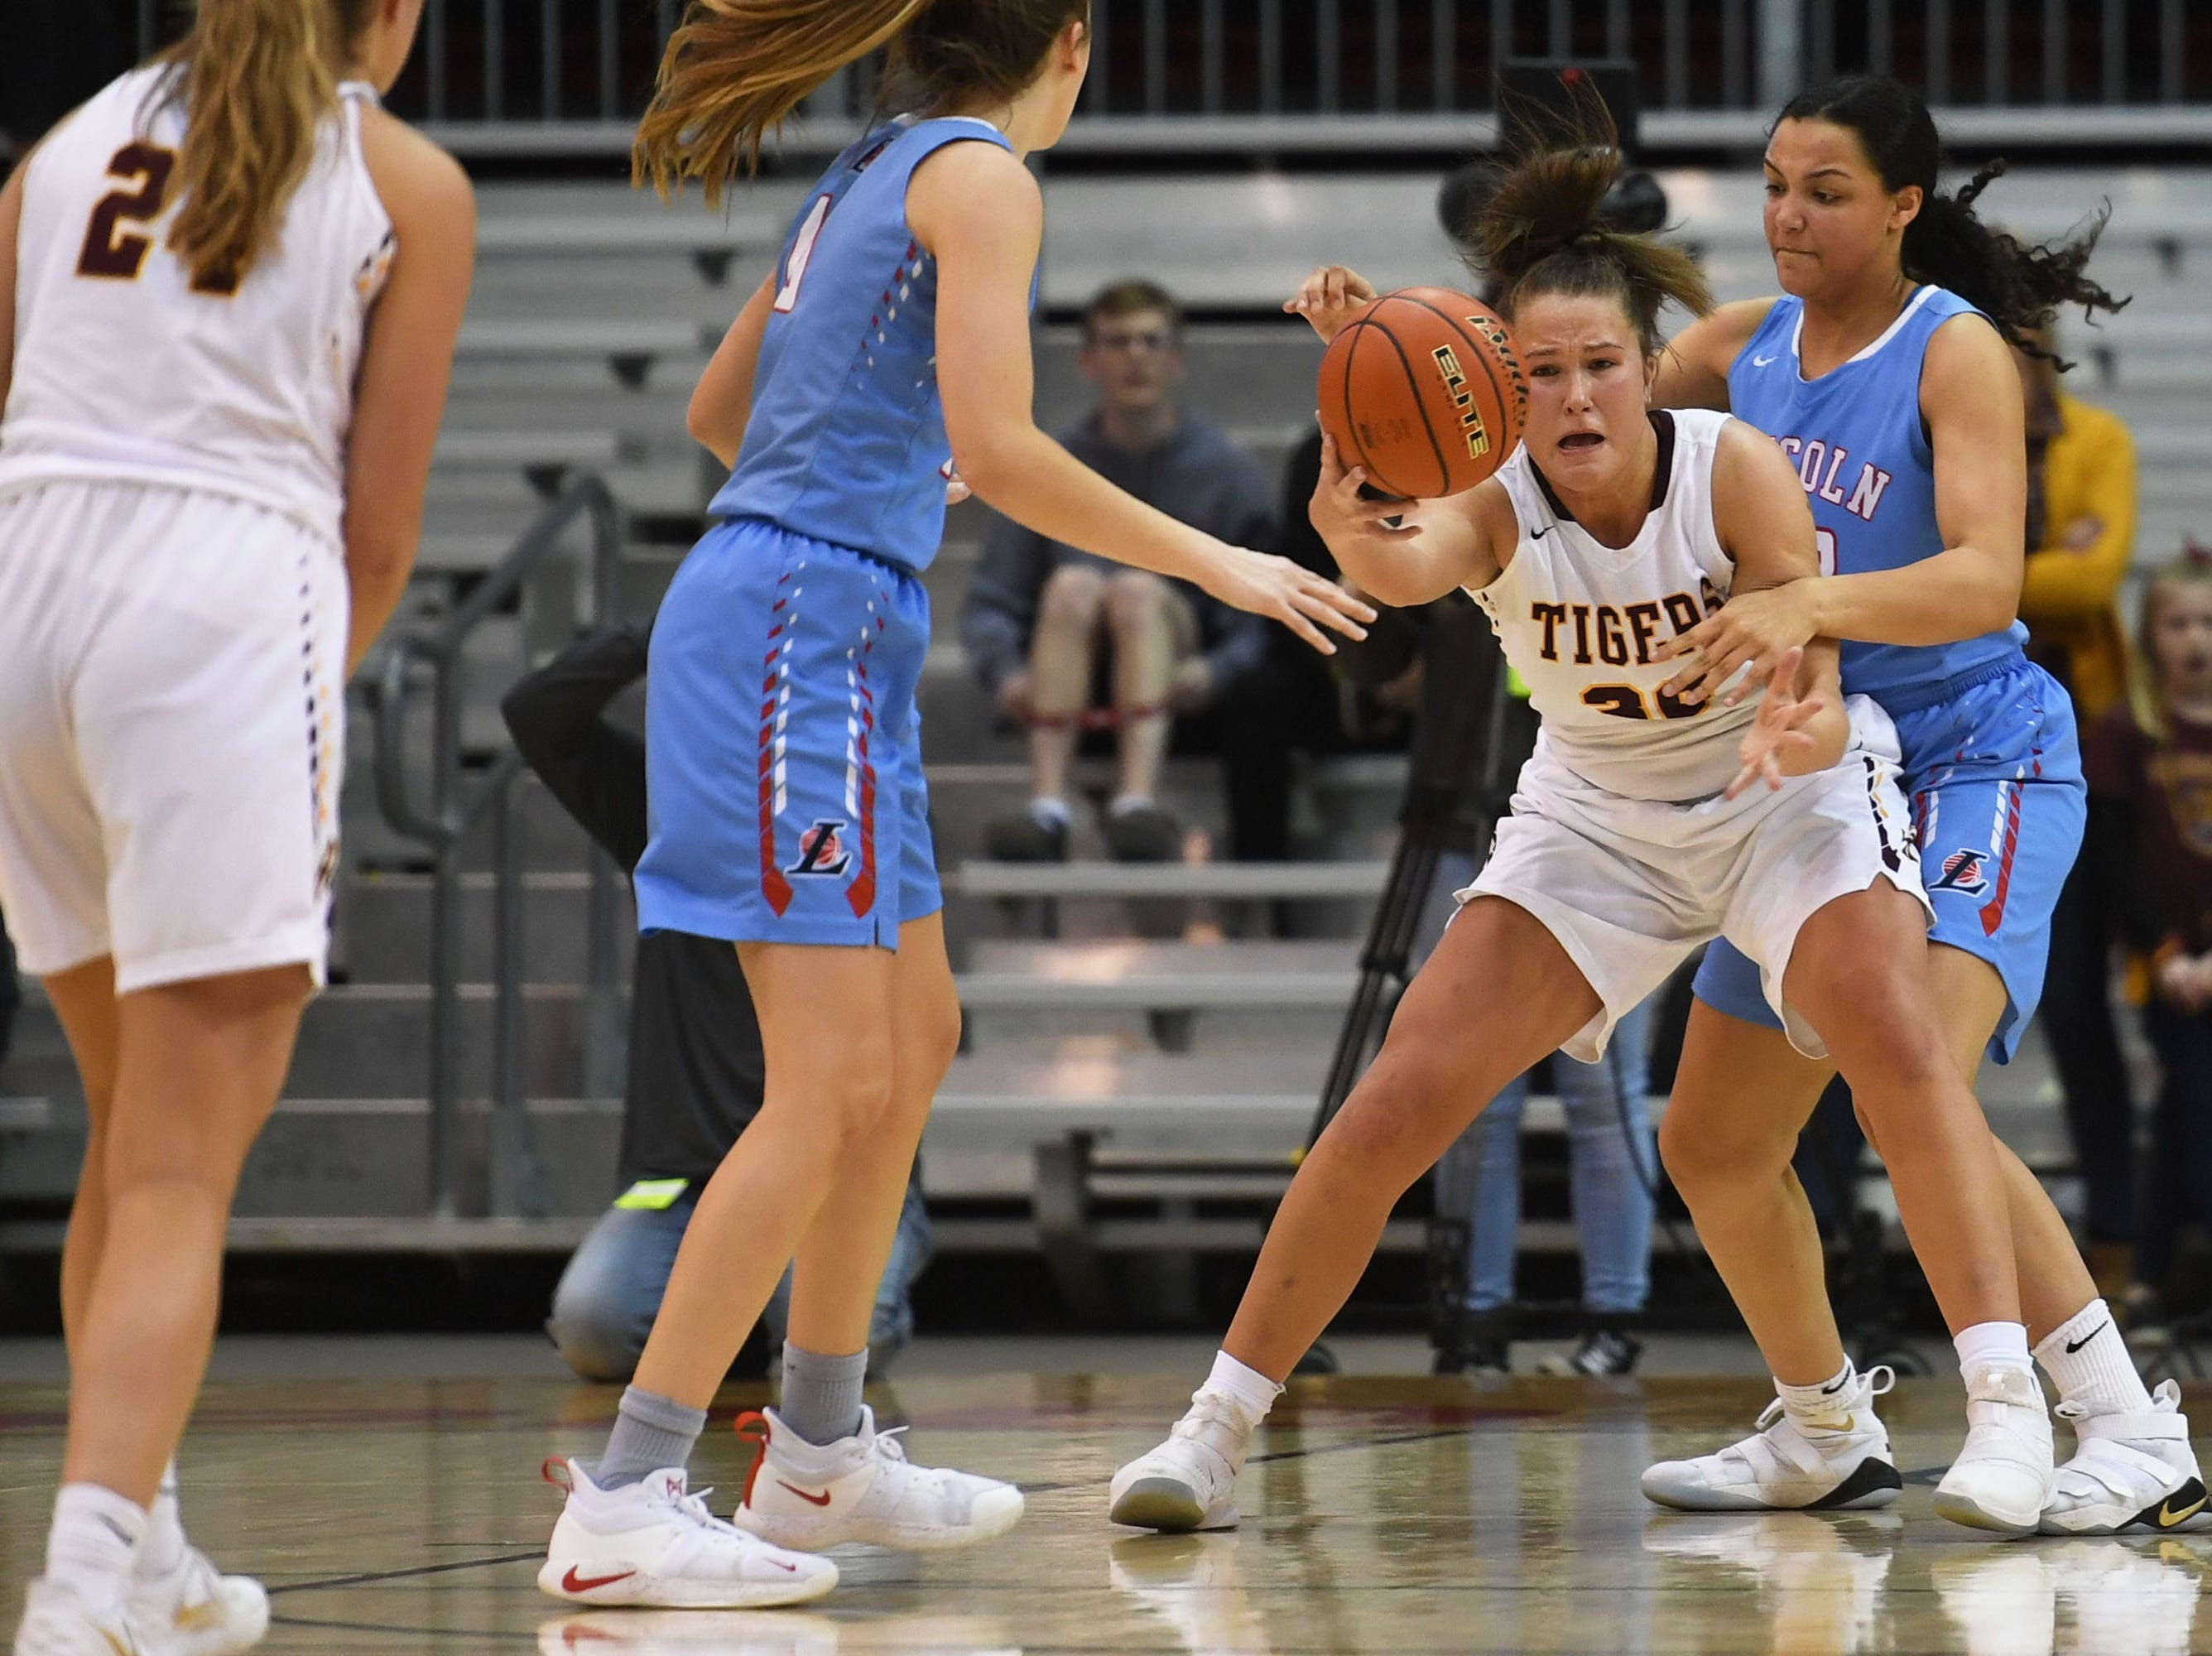 Harrisburg's Jeniah Ugofsky attempts to gain control of the ball during the game against Lincoln in the Class AA semifinals Thursday, March 15, in Rapid City.